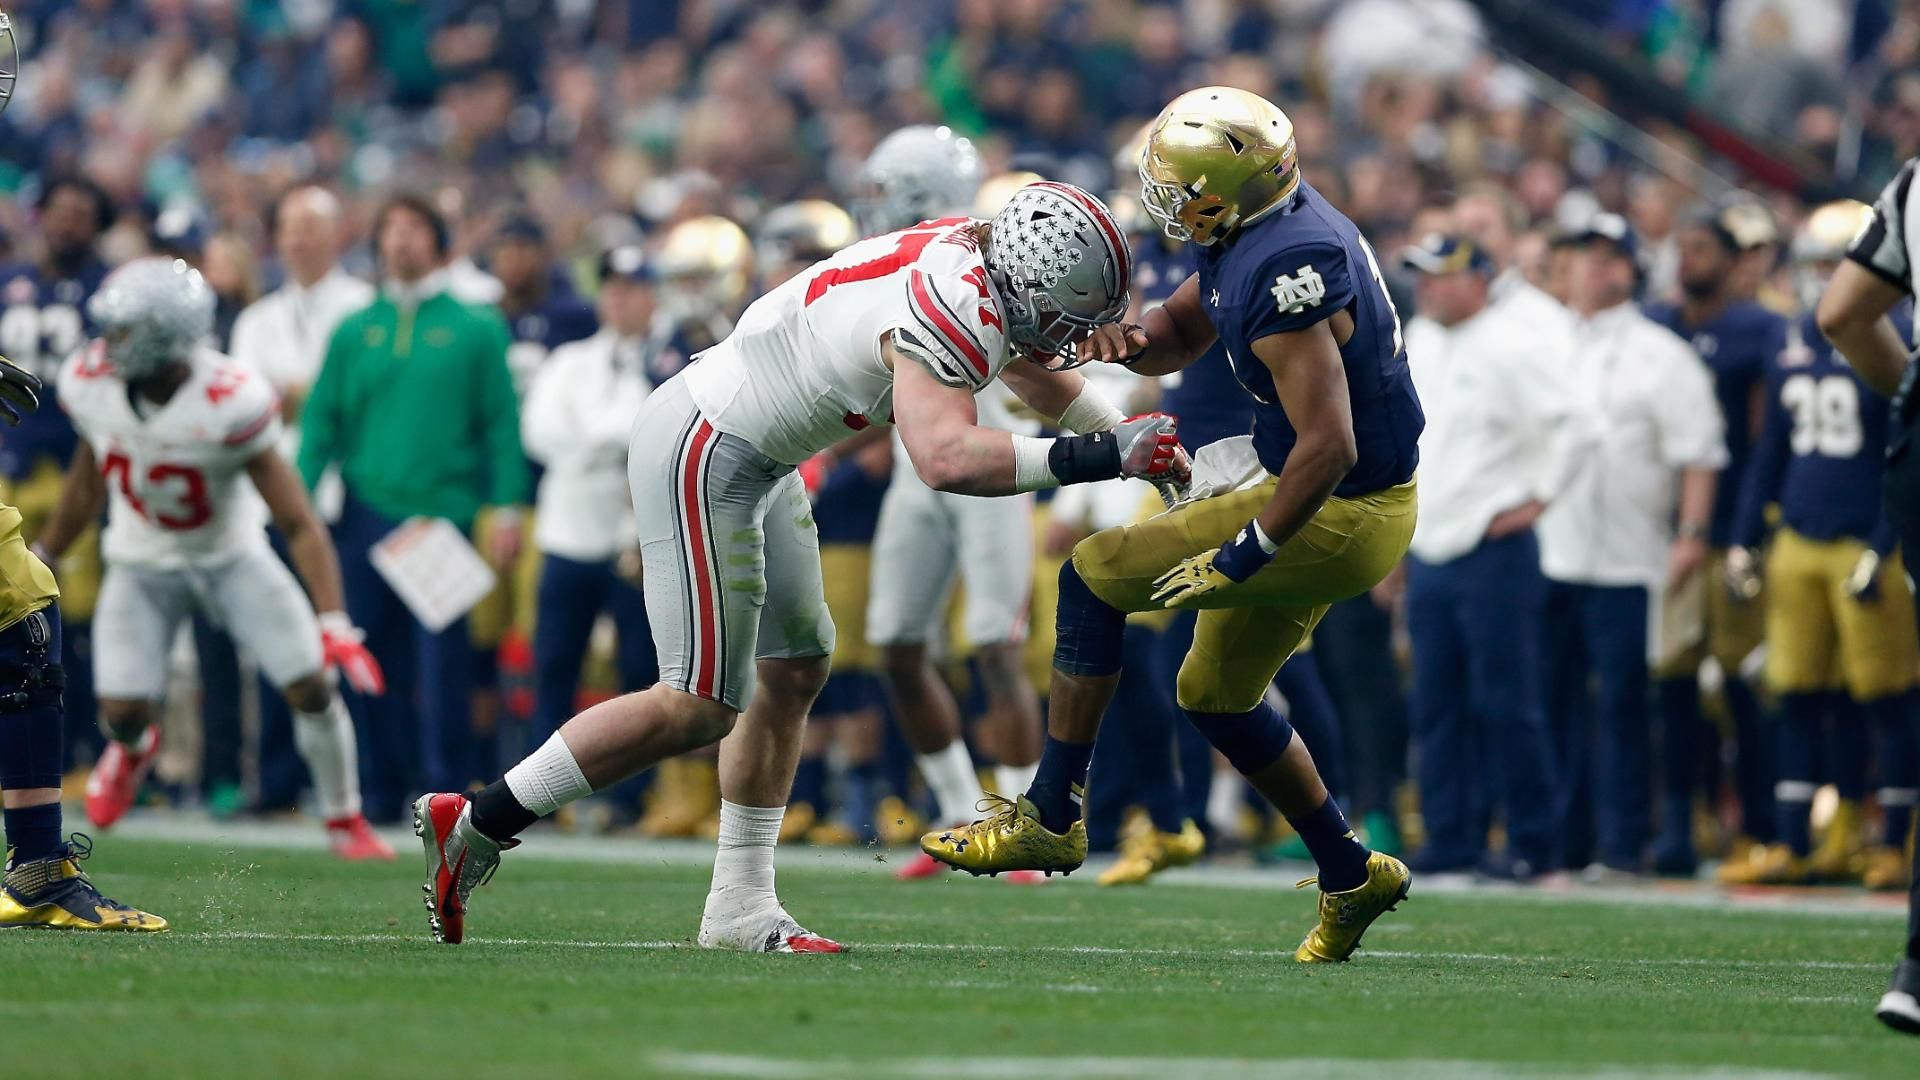 Bosa's college career ends with targeting penalty